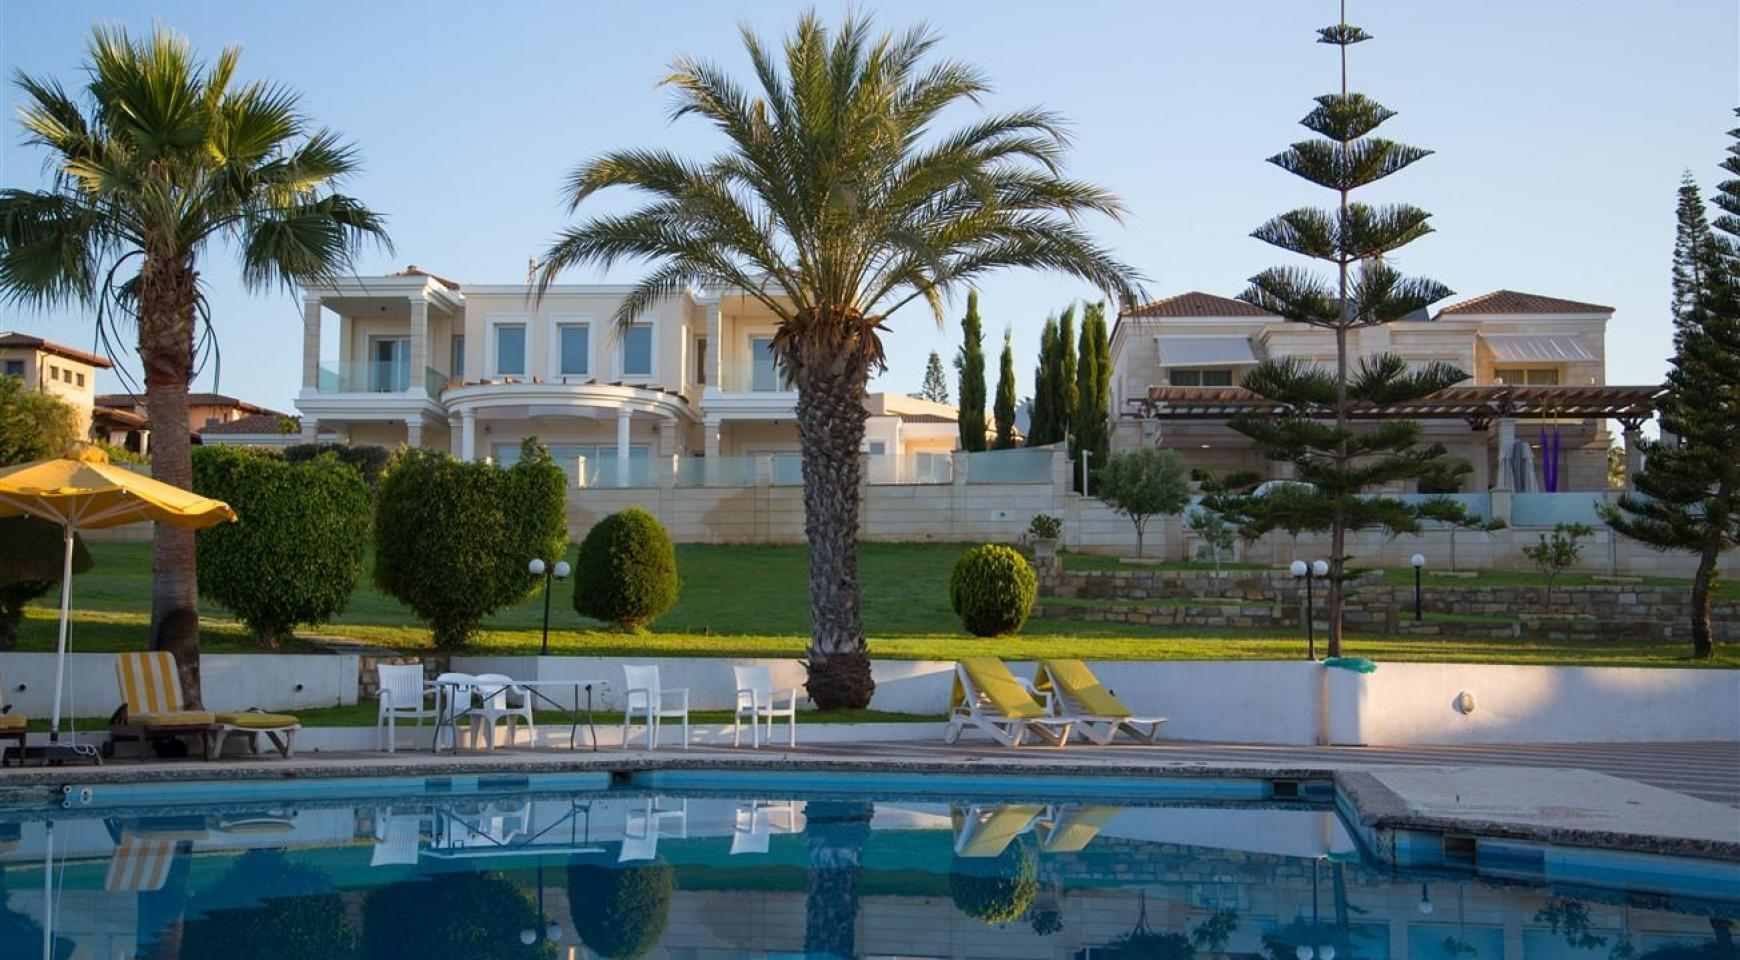 Αντίγραφο Luxury 3 Bedroom Apartment Thera 102 by the Sea - 1